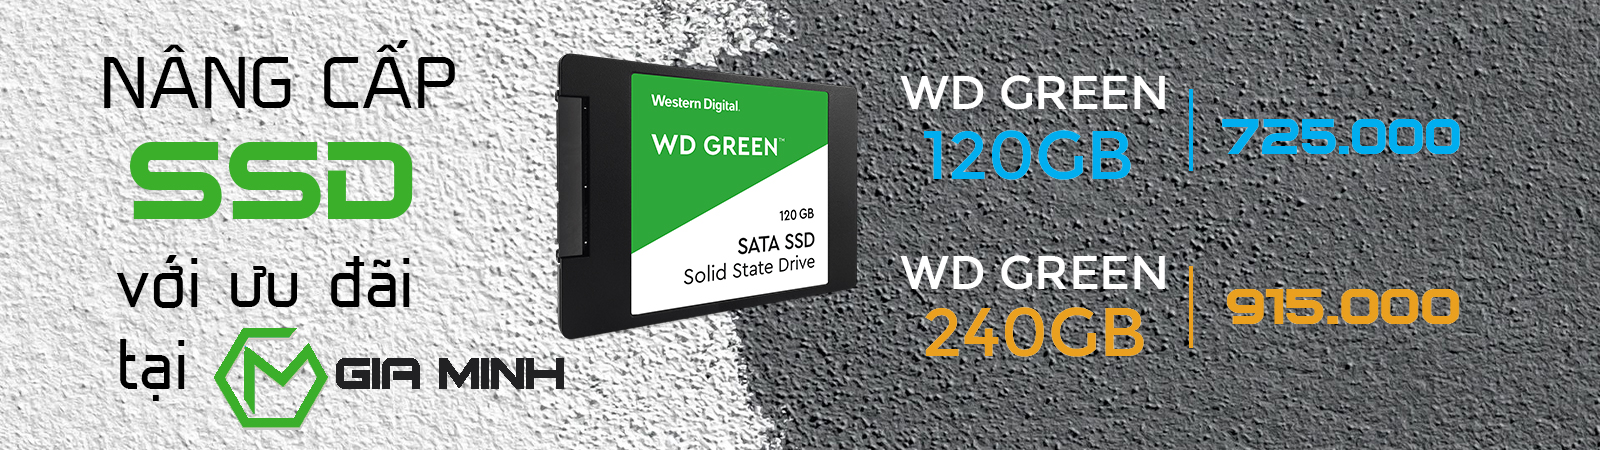 ssd-wd-green-dichvugiaminh